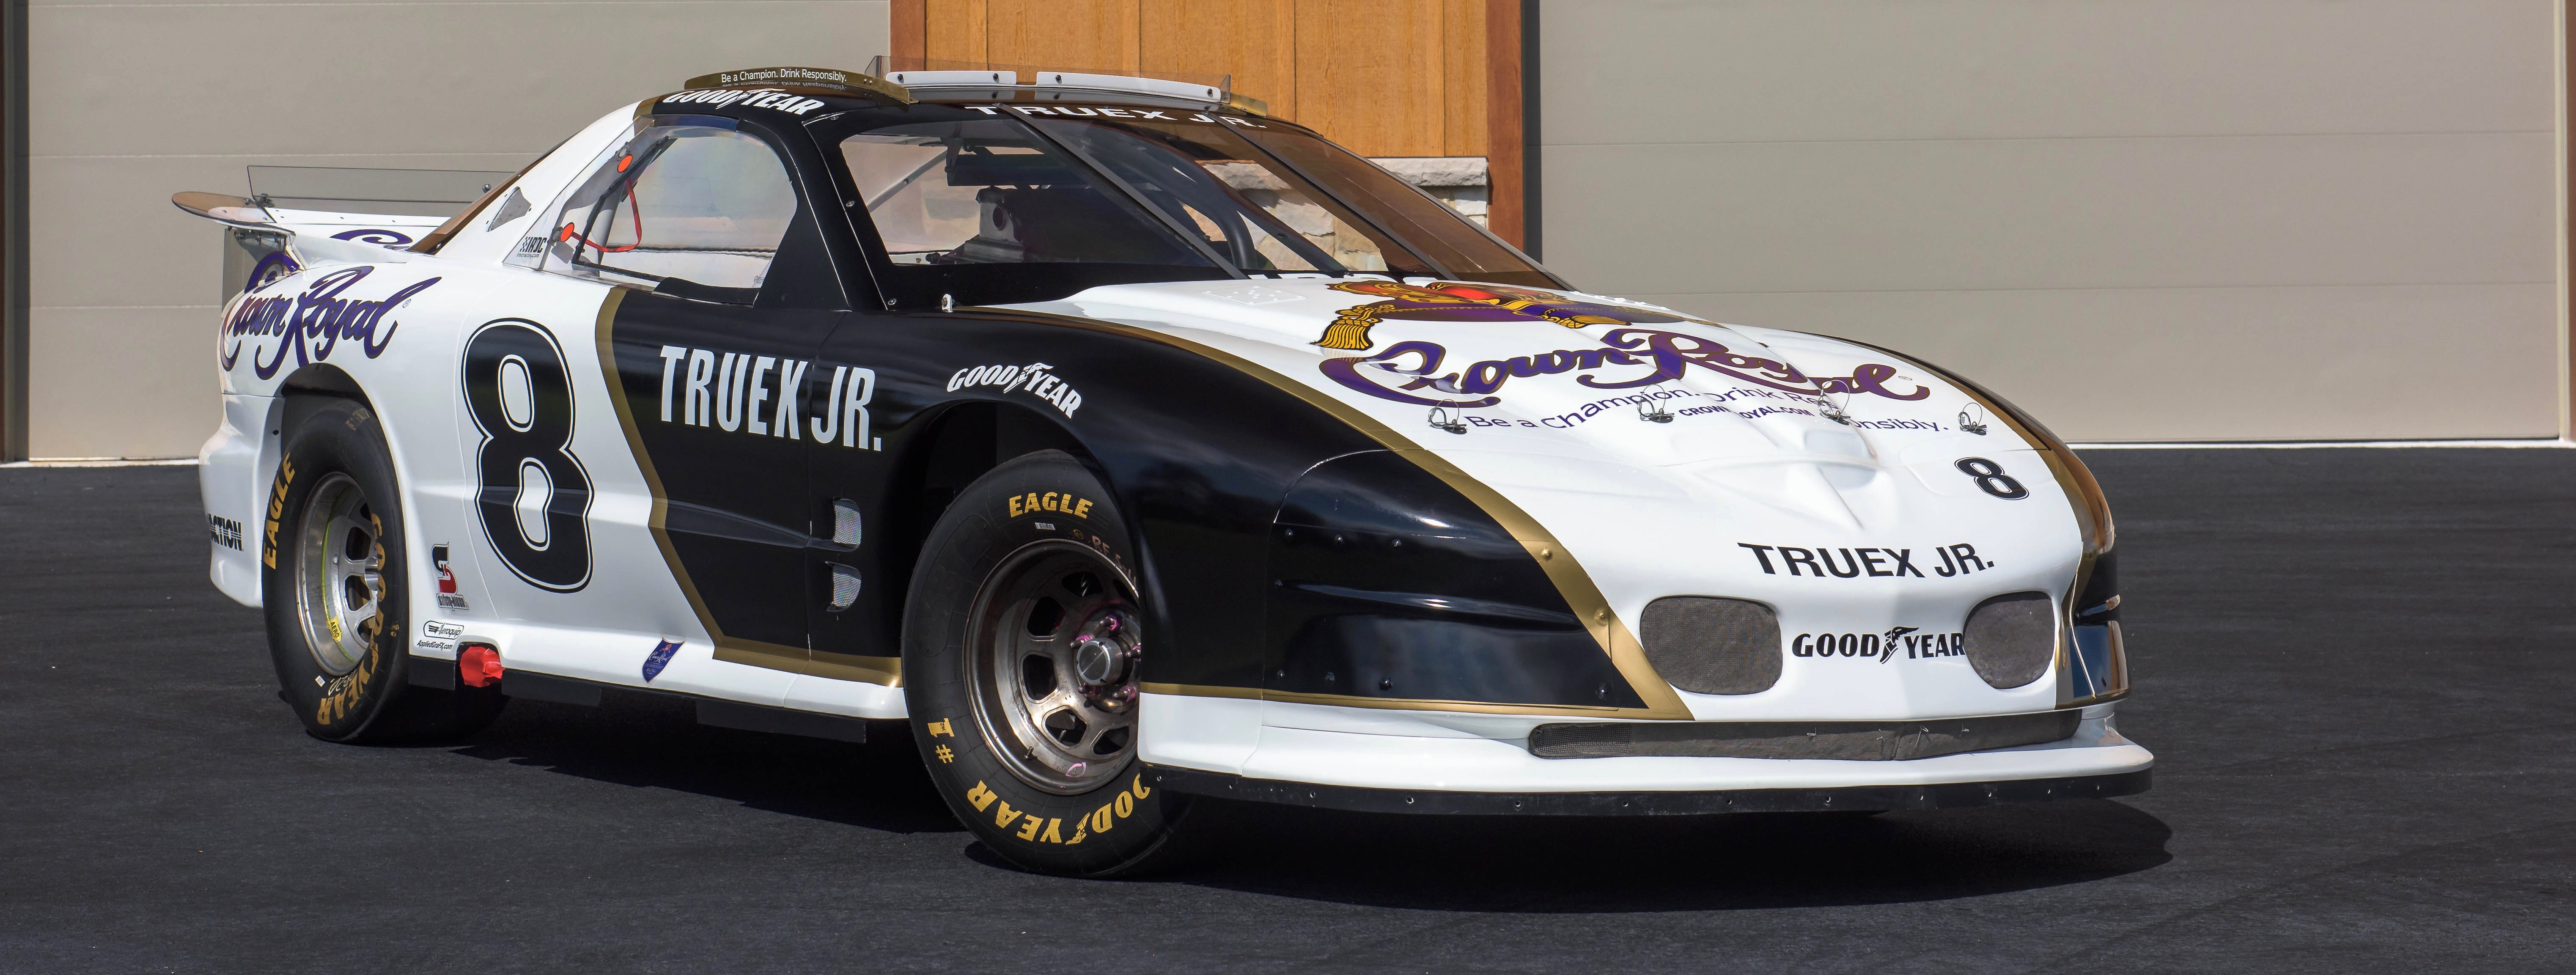 Mecum's Kissimmee auction features IROC racing cars | ClassicCars.com